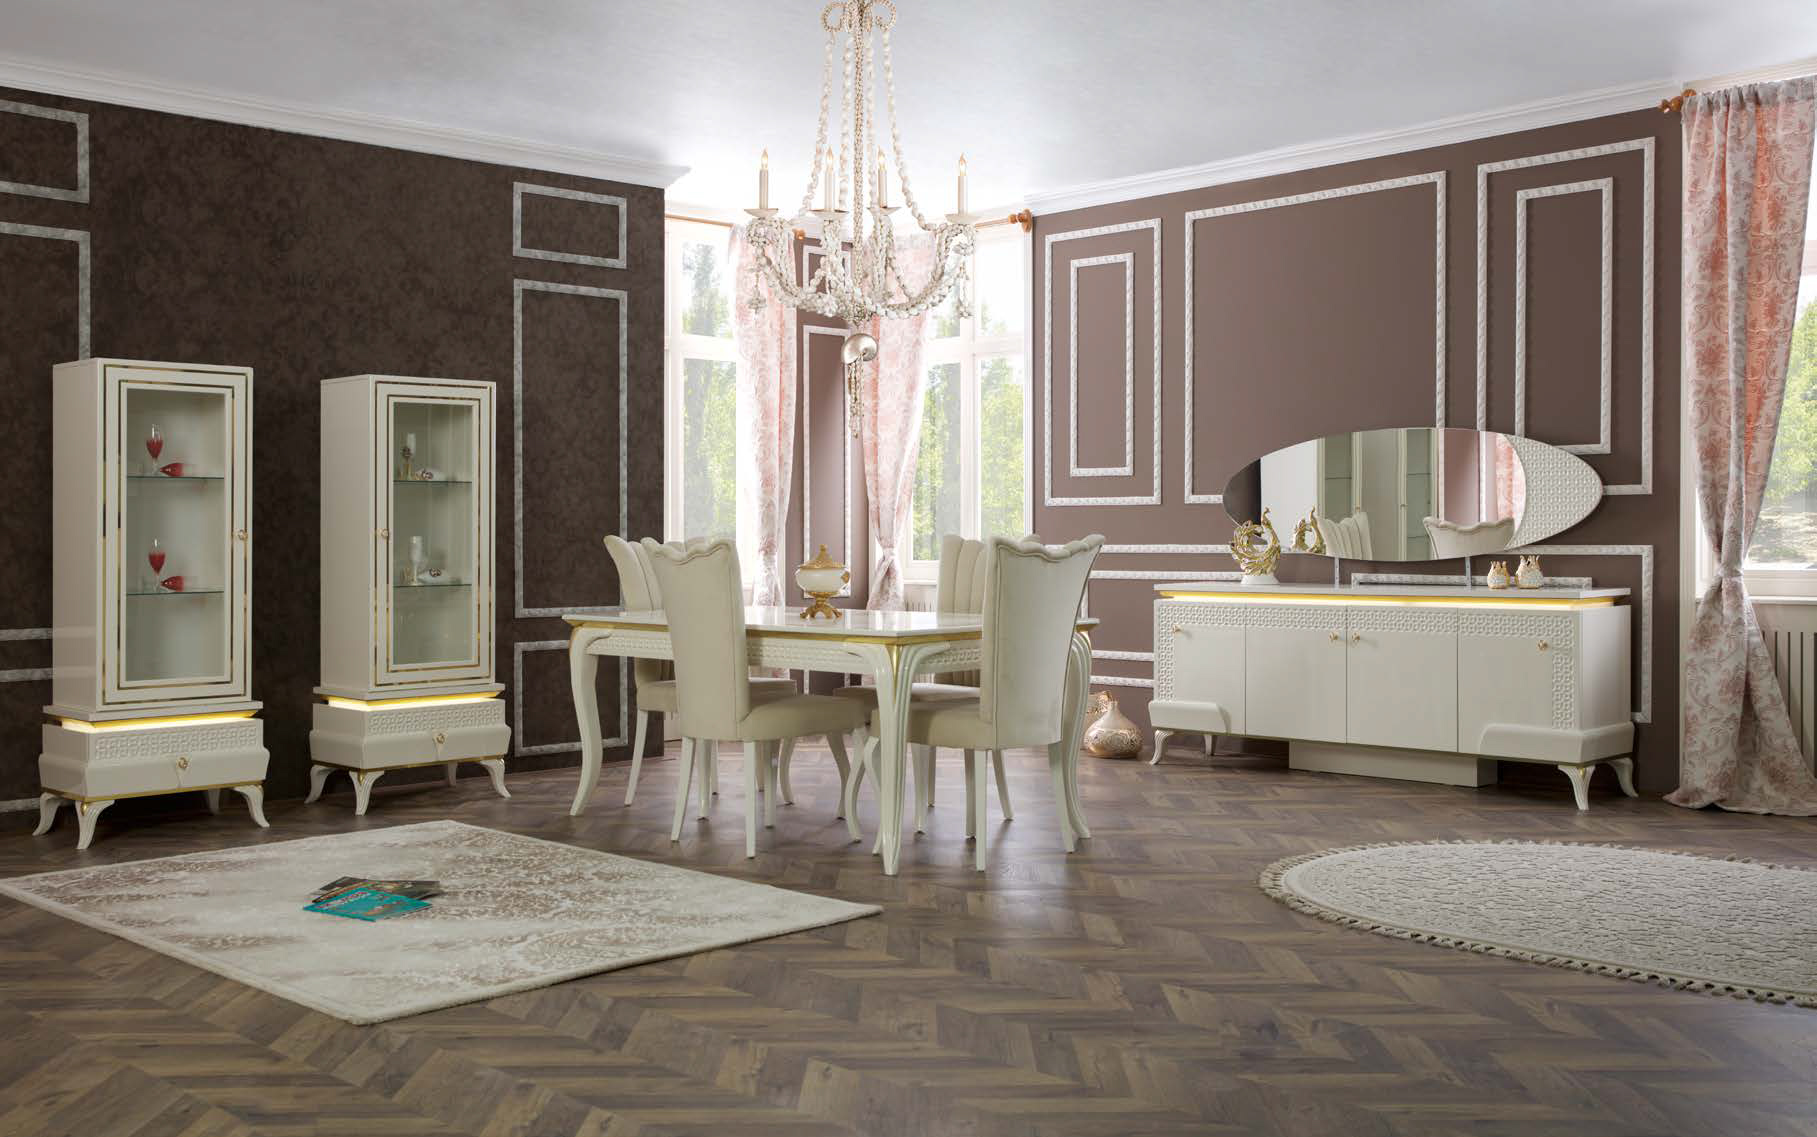 esszimmer affordable esszimmer einrichtung jetzt projekte ansehen with esszimmer latest. Black Bedroom Furniture Sets. Home Design Ideas